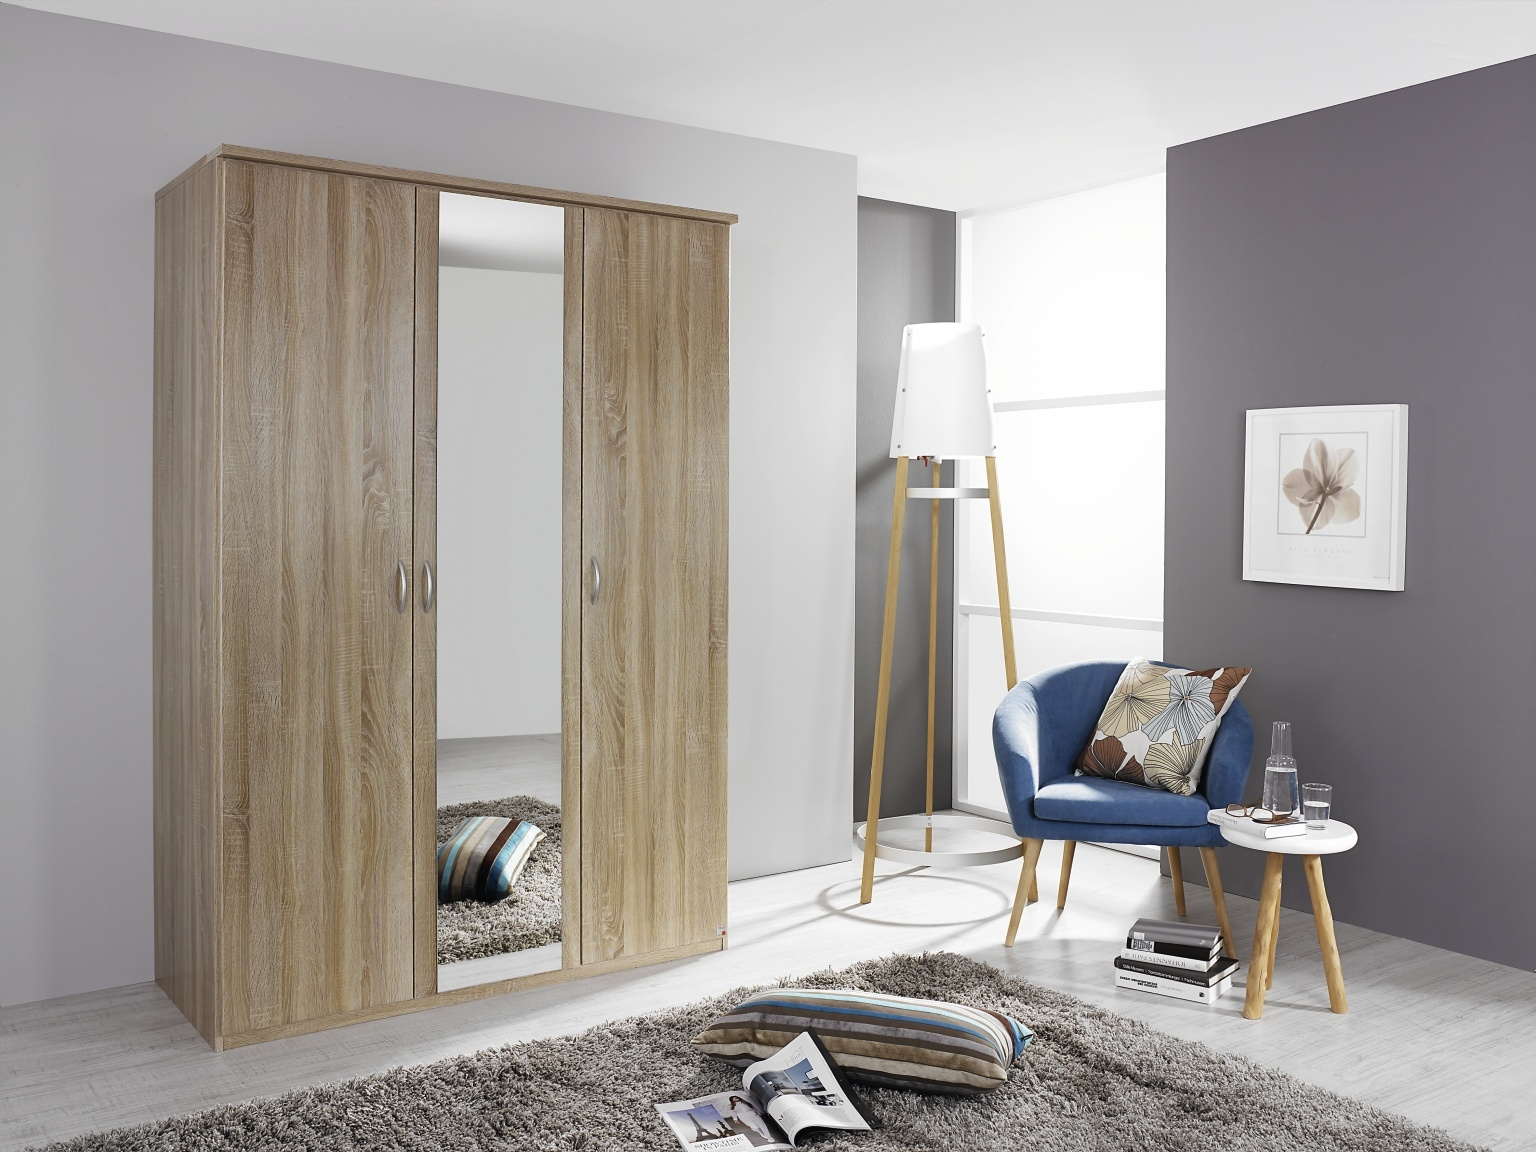 Rauch Blitz 2 Door Wardrobe in Sonoma Oak - W 91cm